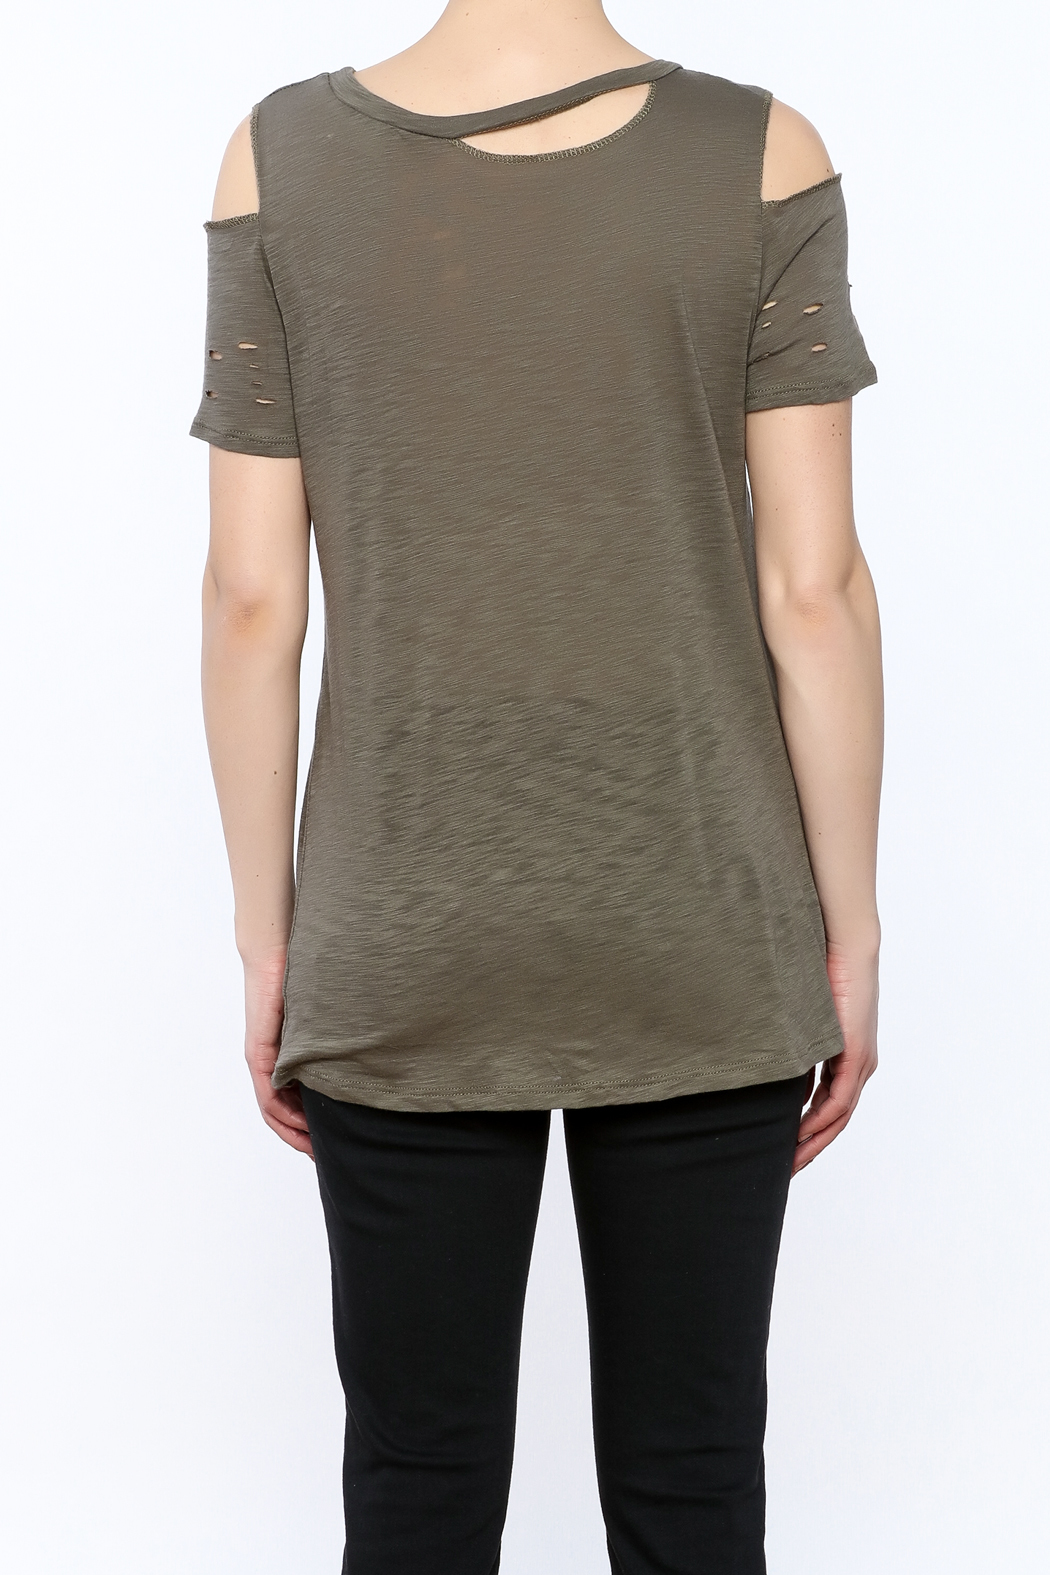 Emory Park Olive Distressed Graphic Tee - Back Cropped Image